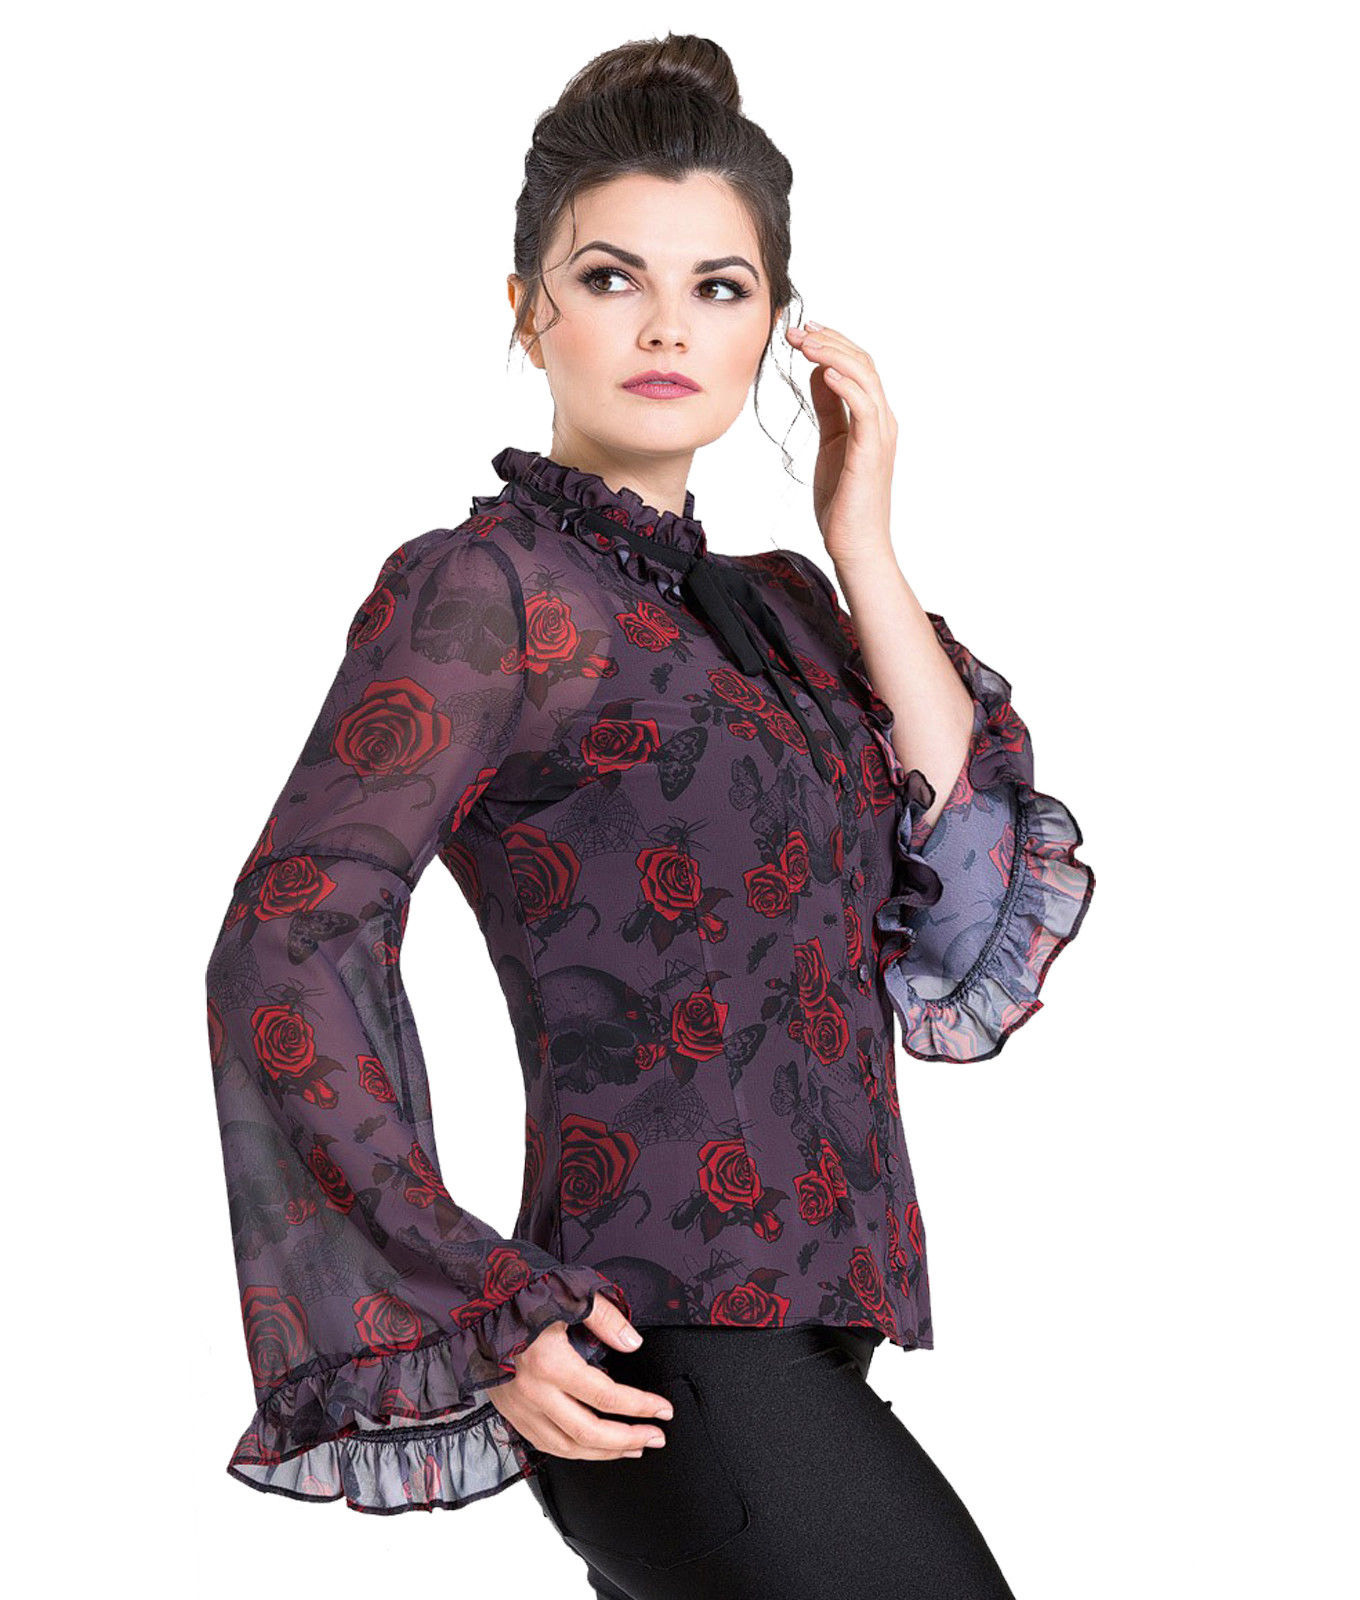 Hell-Bunny-Chiffon-Shirt-Top-Gothic-Floaty-BUGS-amp-ROSES-Purple-Blouse-All-Sizes thumbnail 11